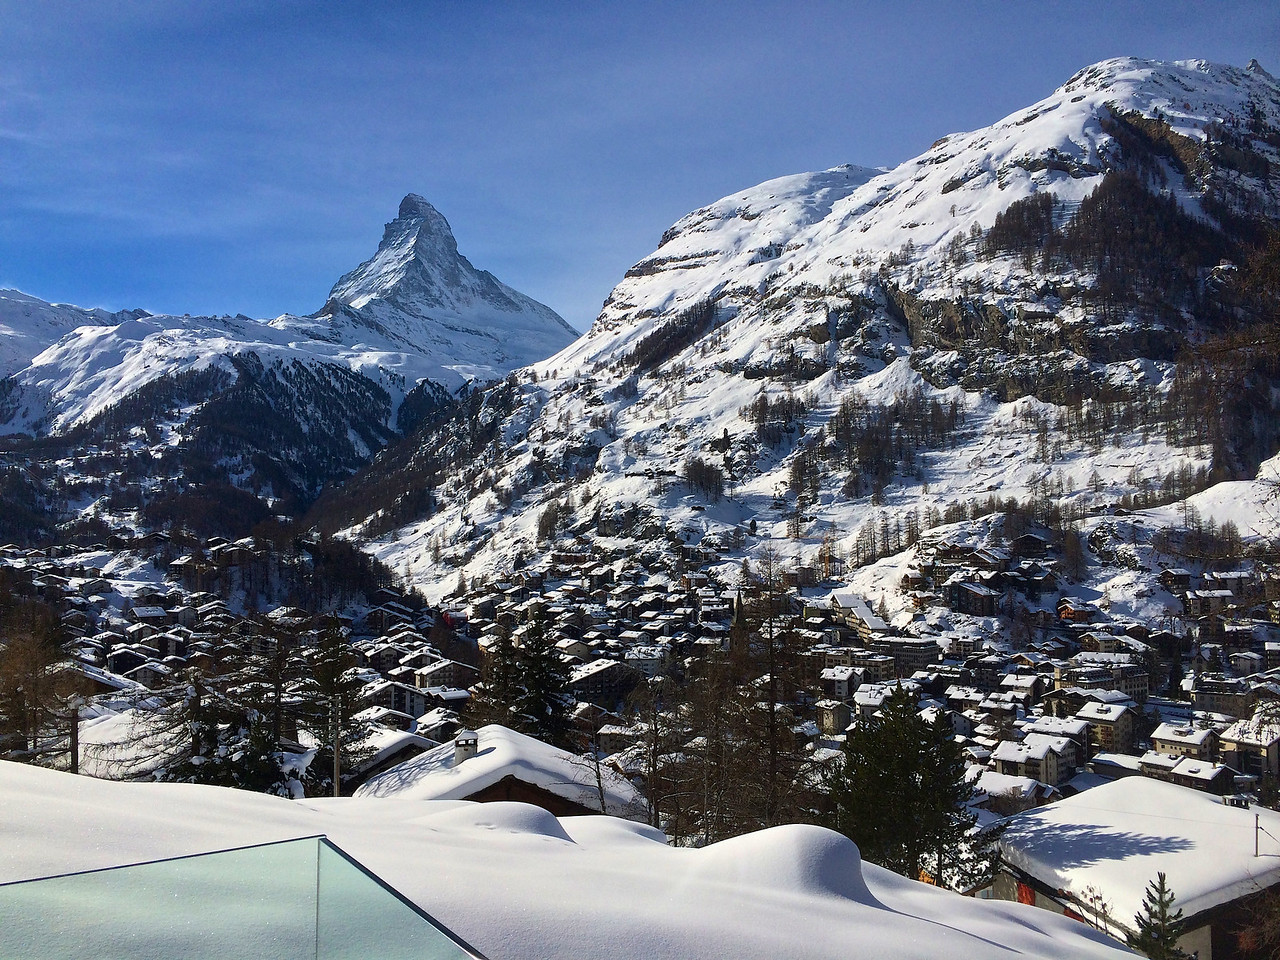 Here you can sit in the hot tub and watch the Matterhorn as the day passes by.